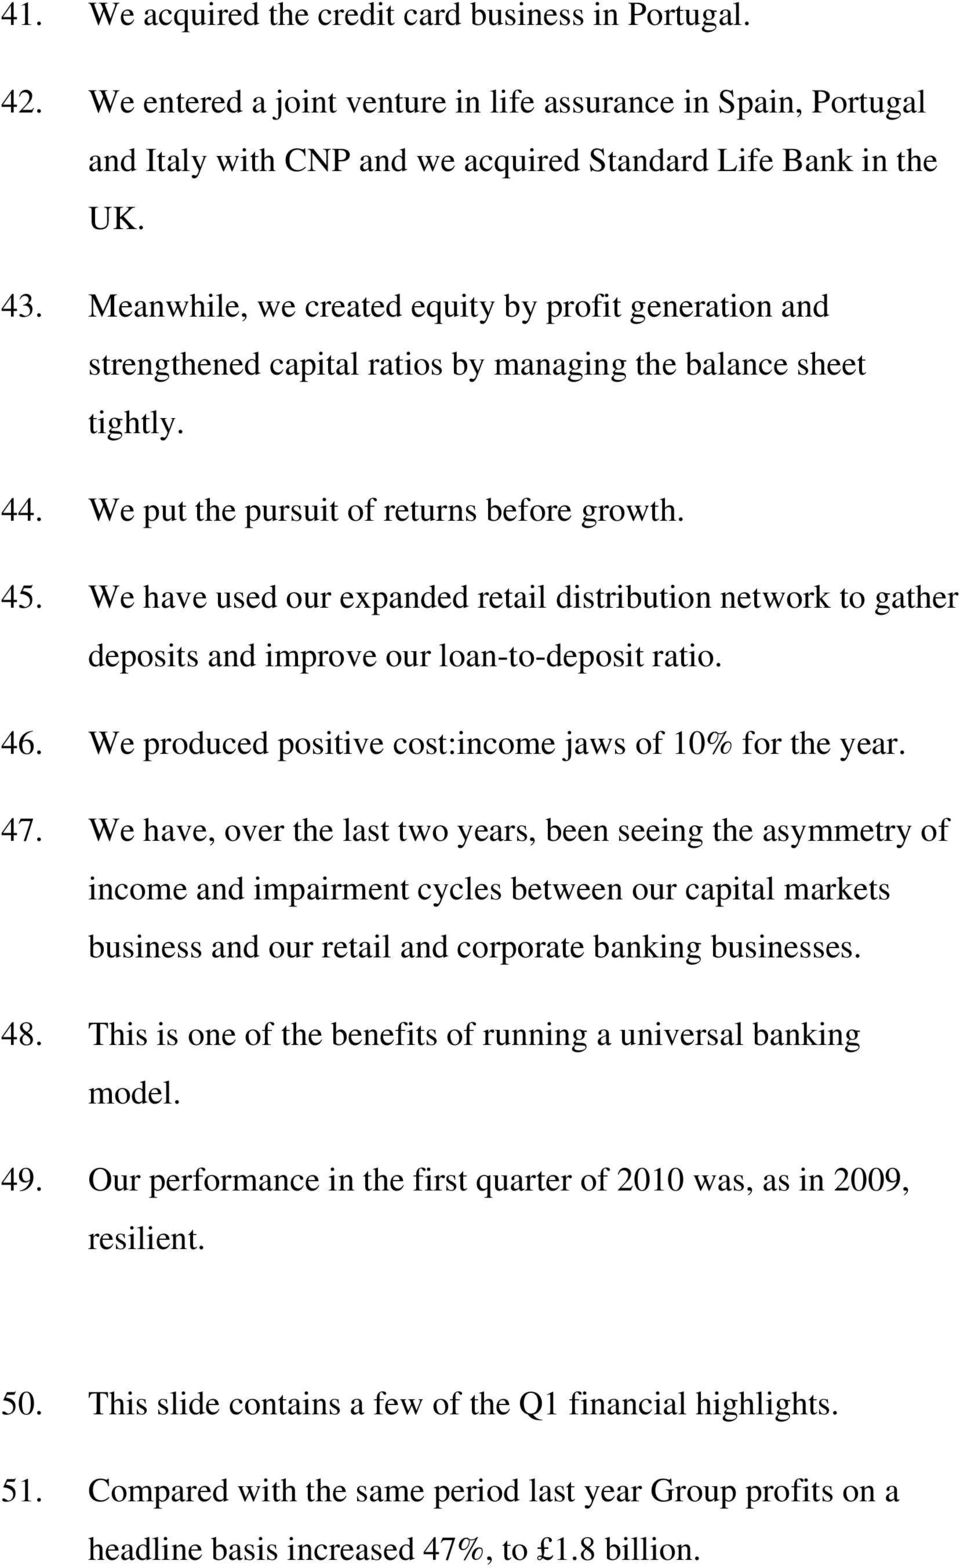 We have used our expanded retail distribution network to gather deposits and improve our loan-to-deposit ratio. 46. We produced positive cost:income jaws of 10% for the year. 47.